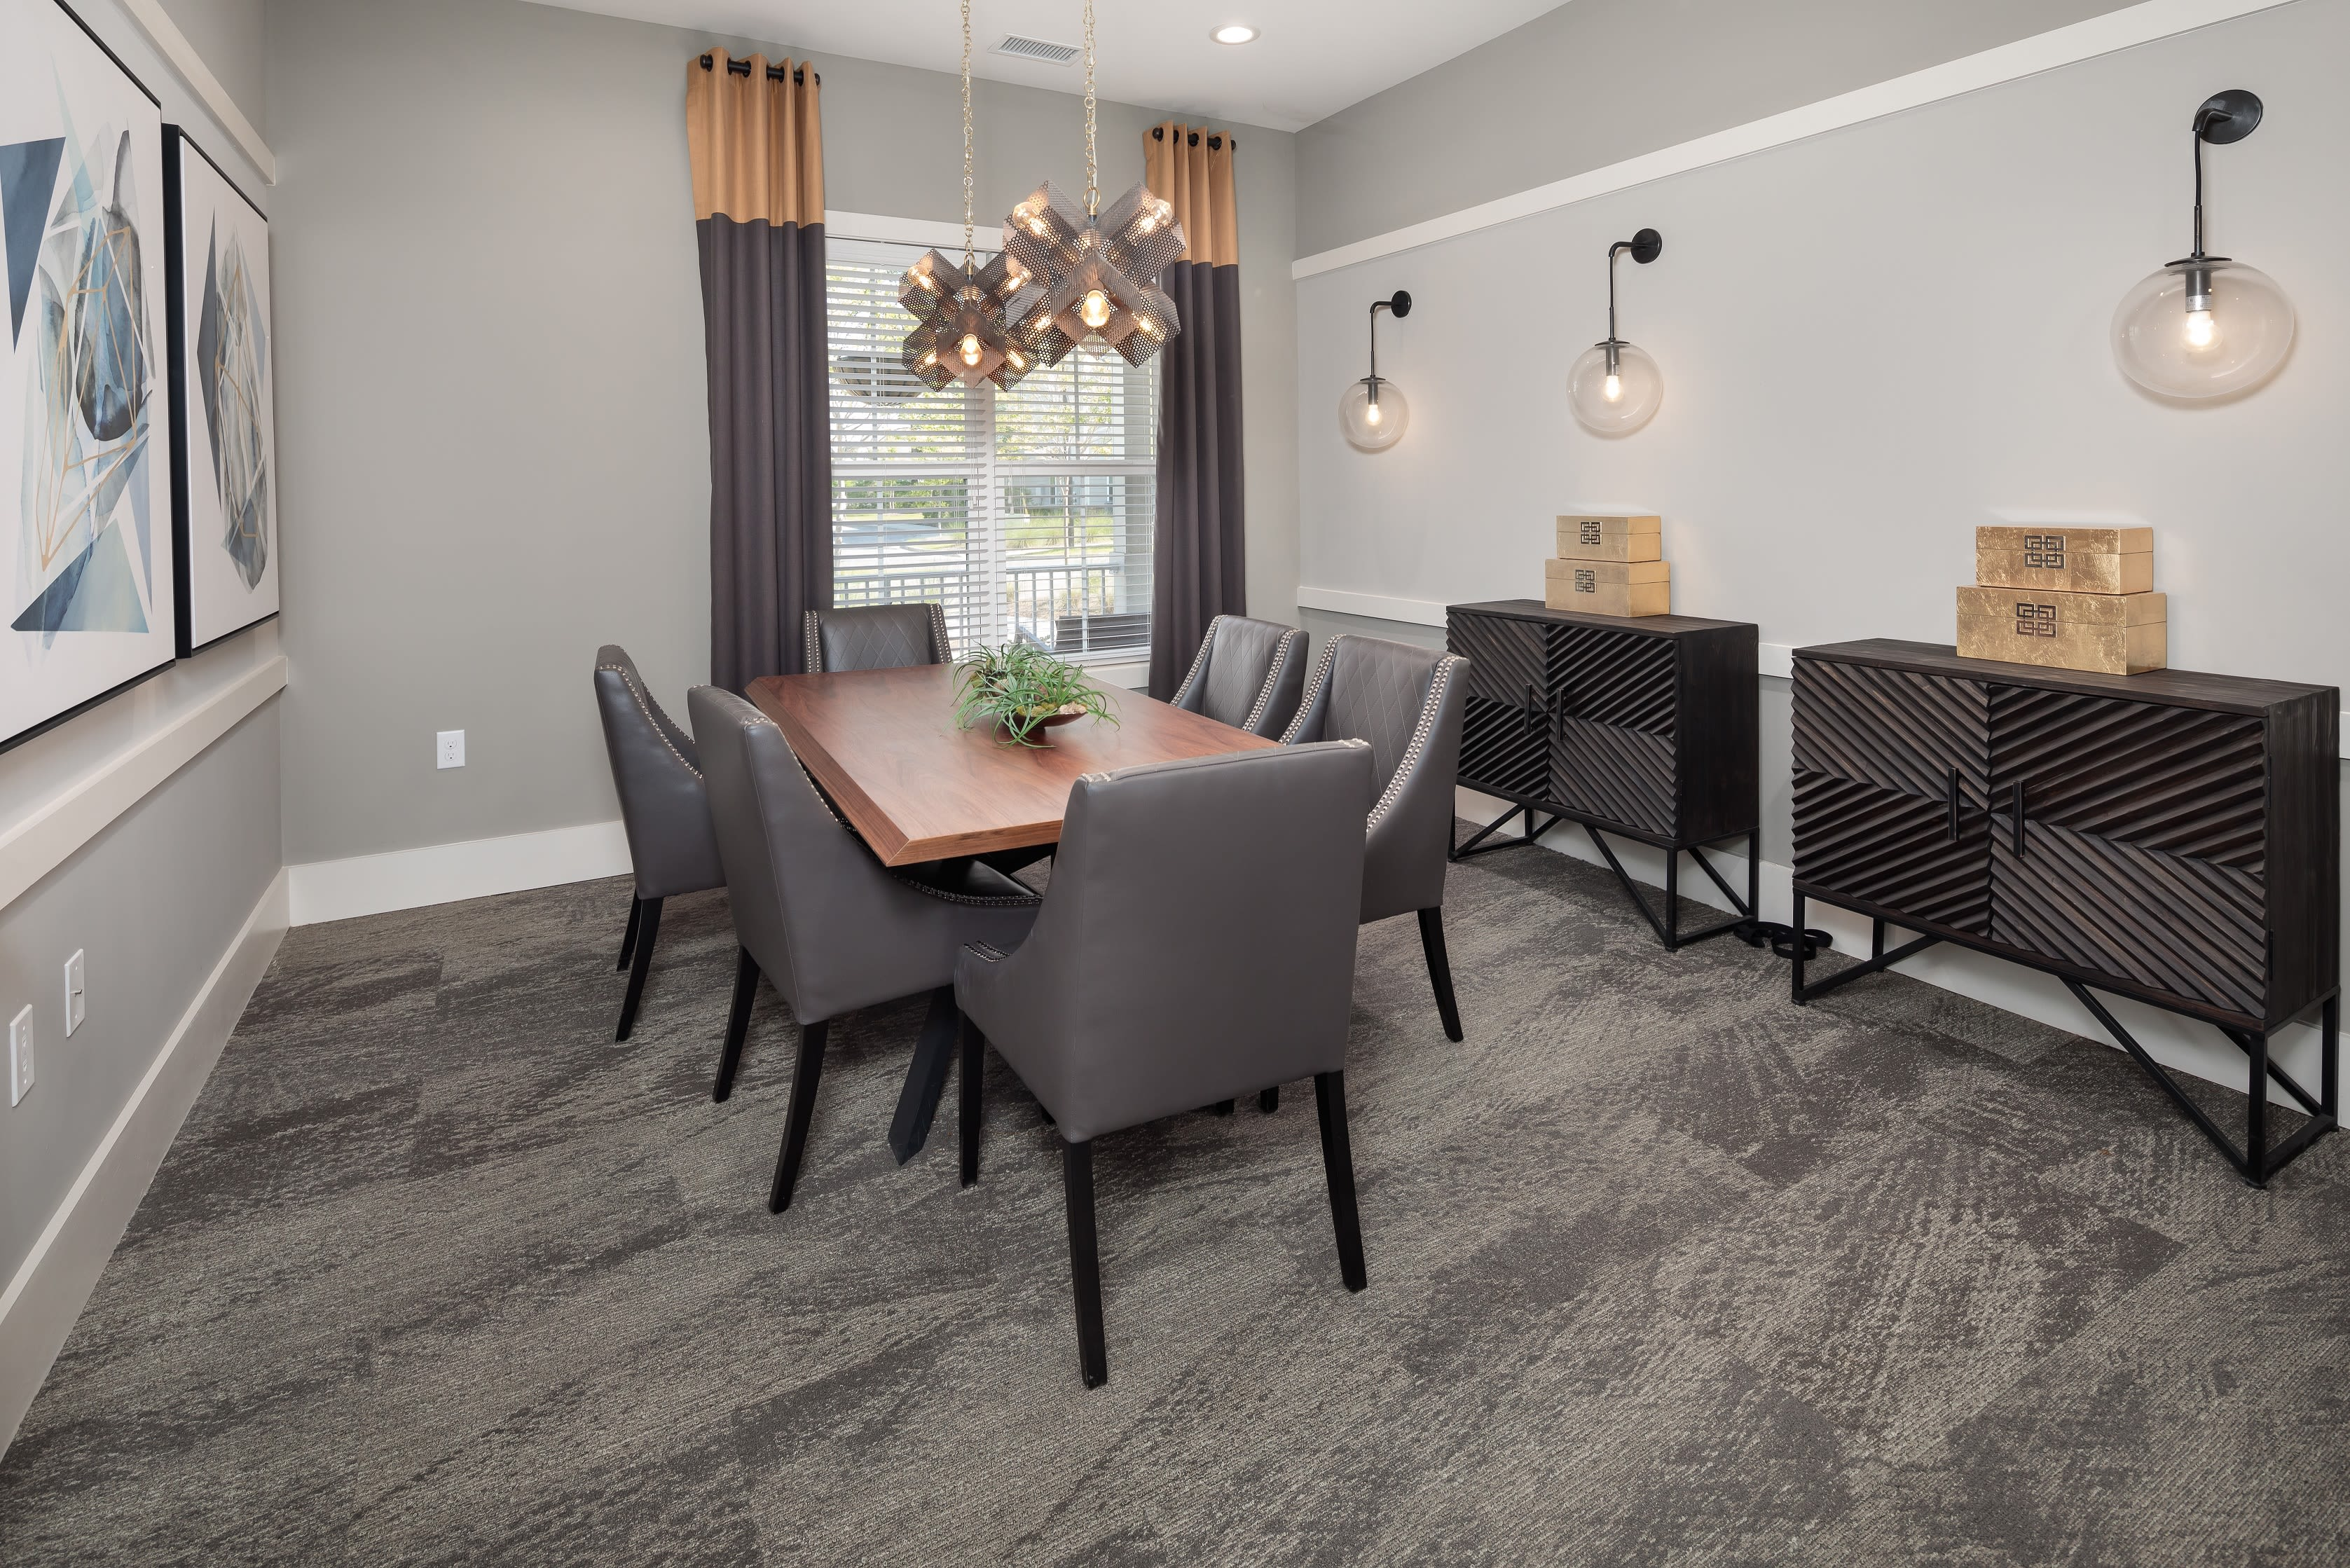 A meeting area for residents at The Isaac in Summerville, South Carolina